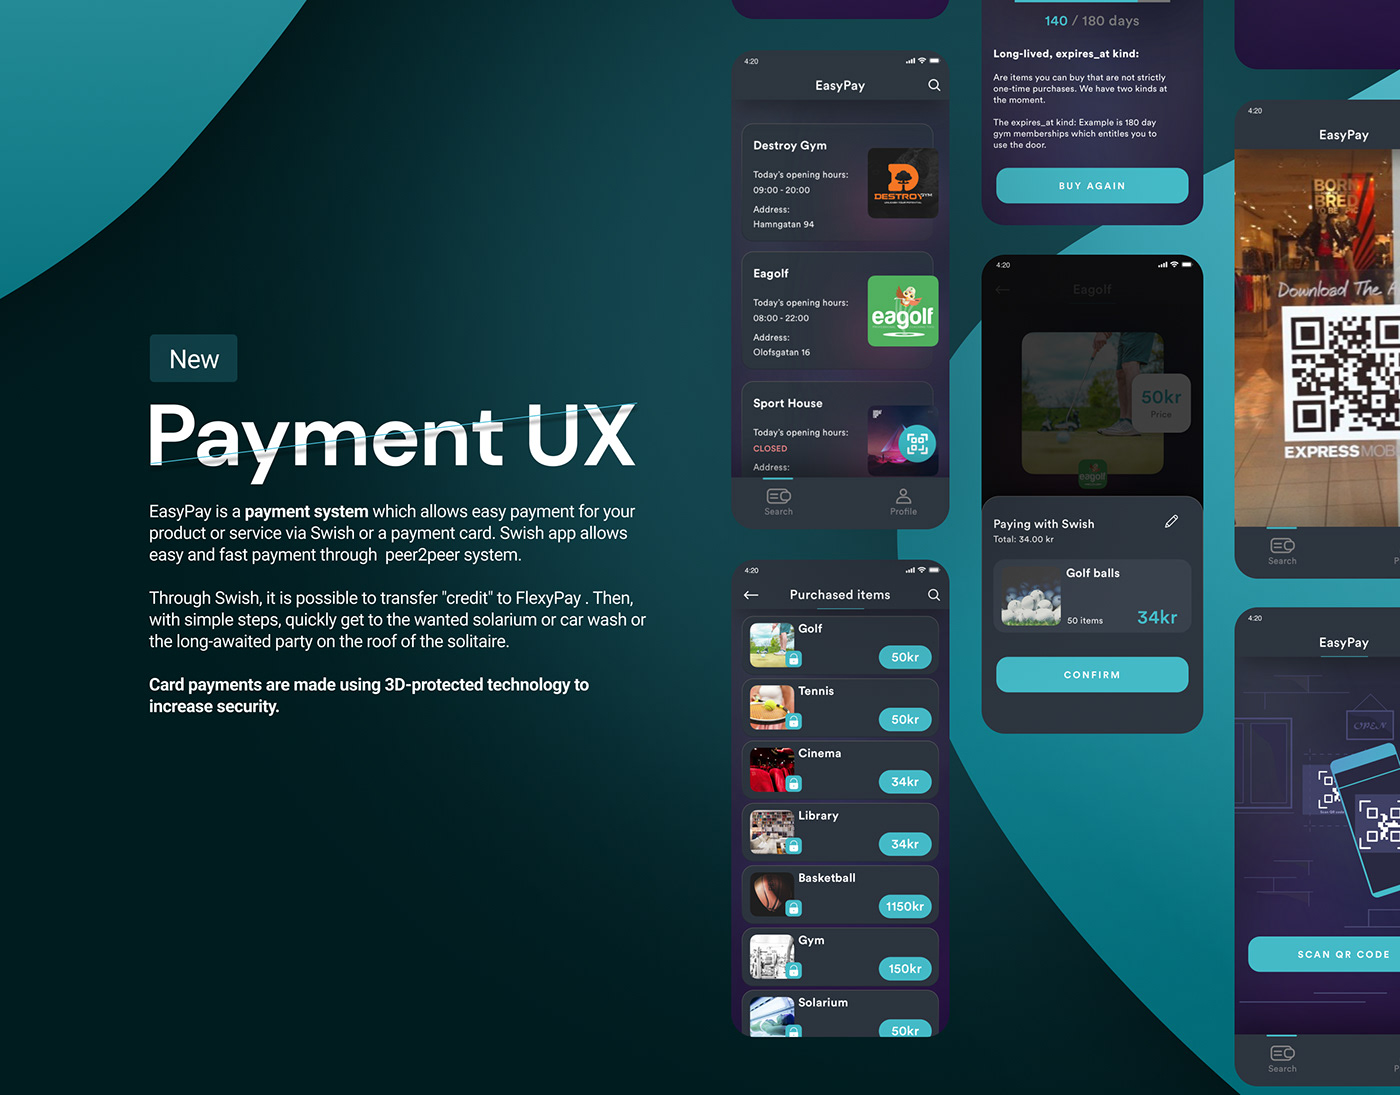 Payment UX